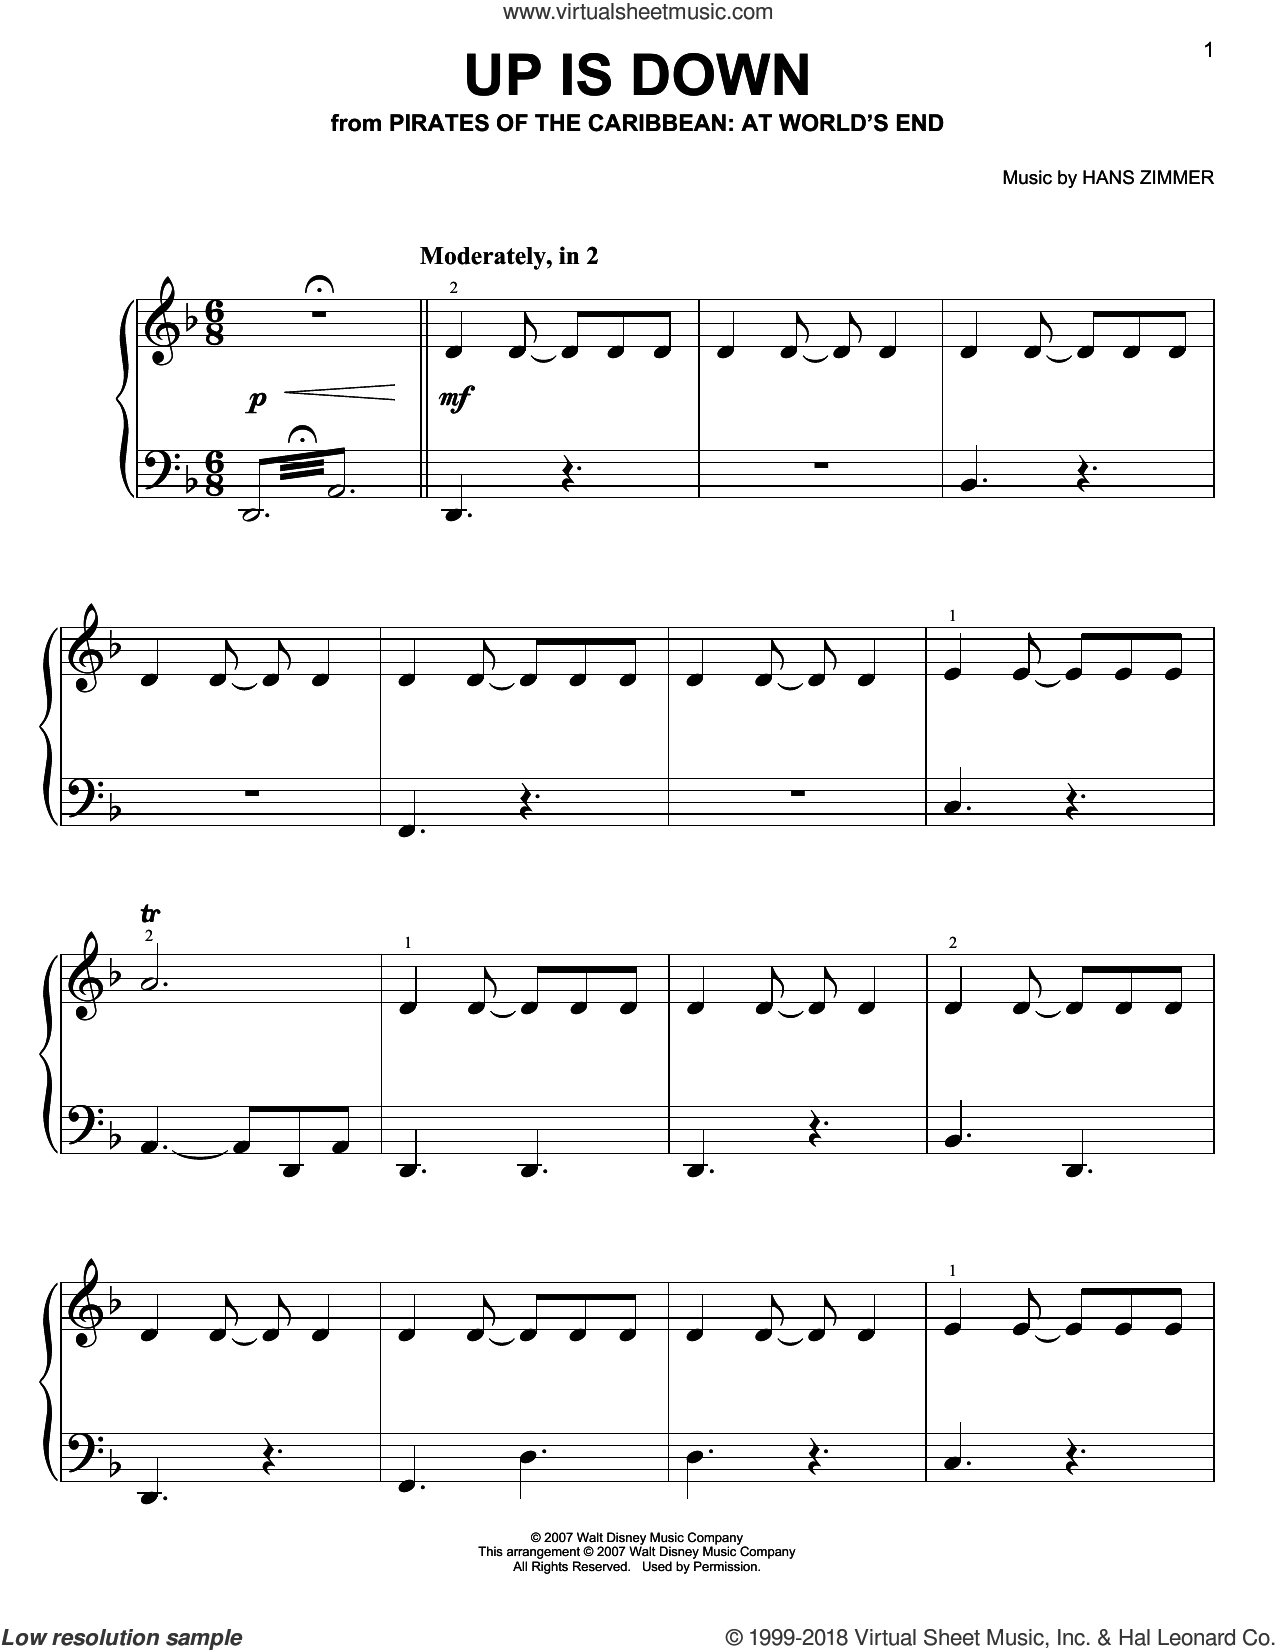 Up Is Down (from Pirates Of The Caribbean: At World's End) sheet music for piano solo by Hans Zimmer, easy skill level